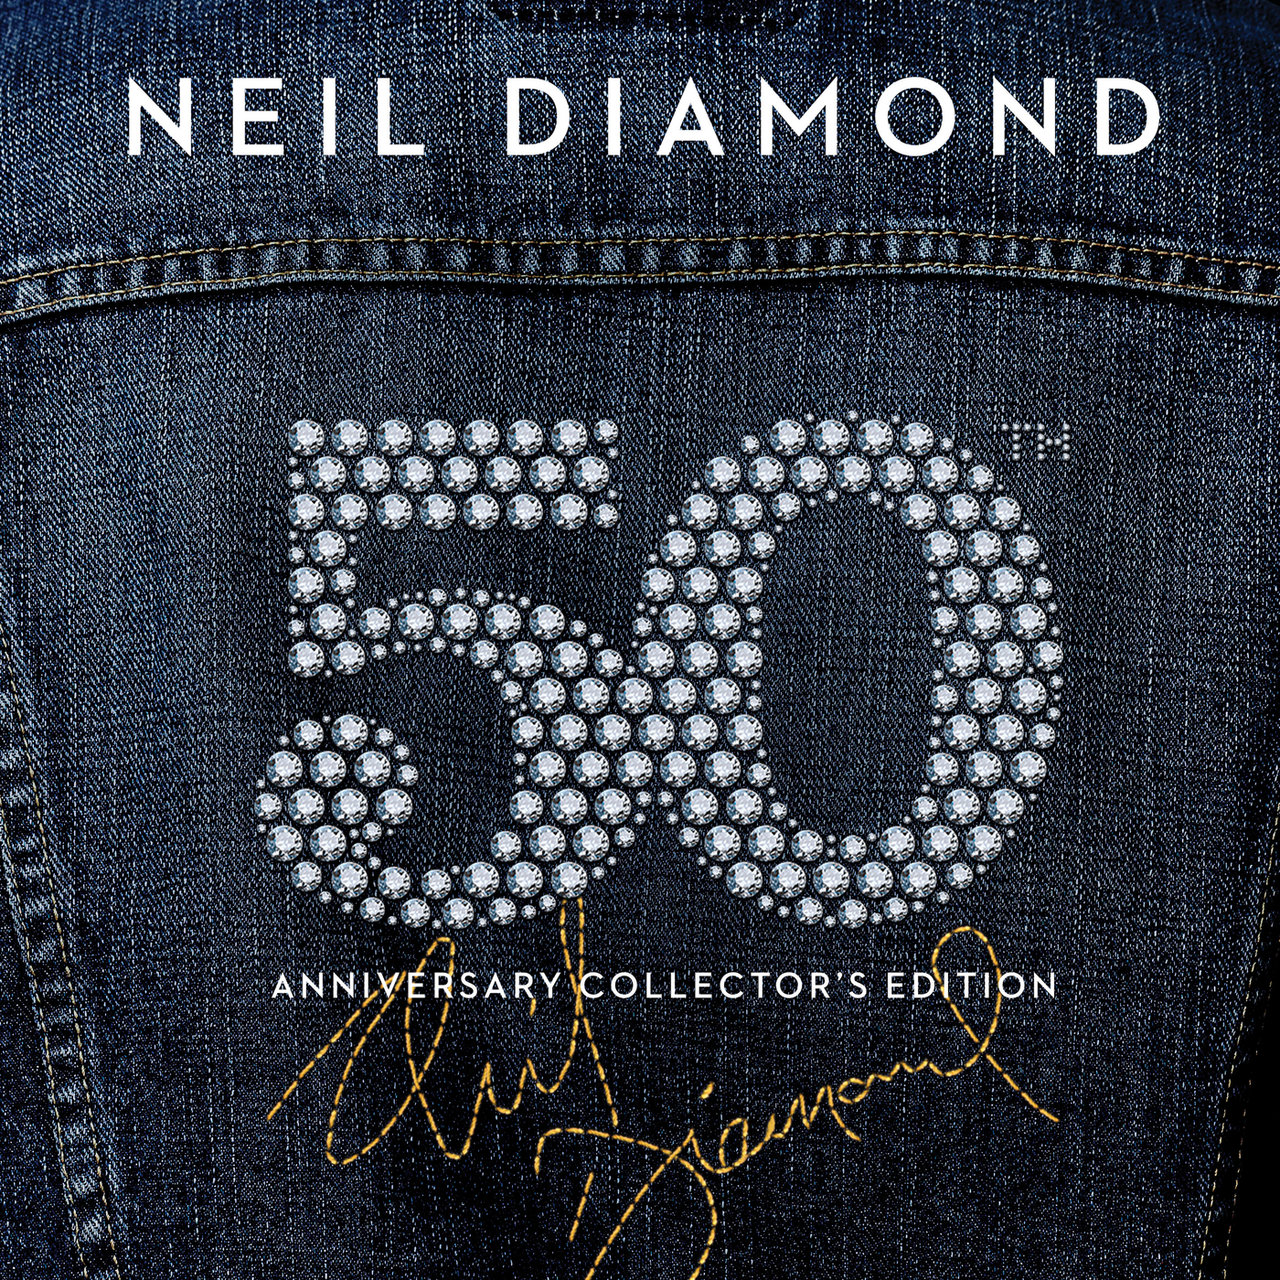 50th Anniversary Collector's Edition